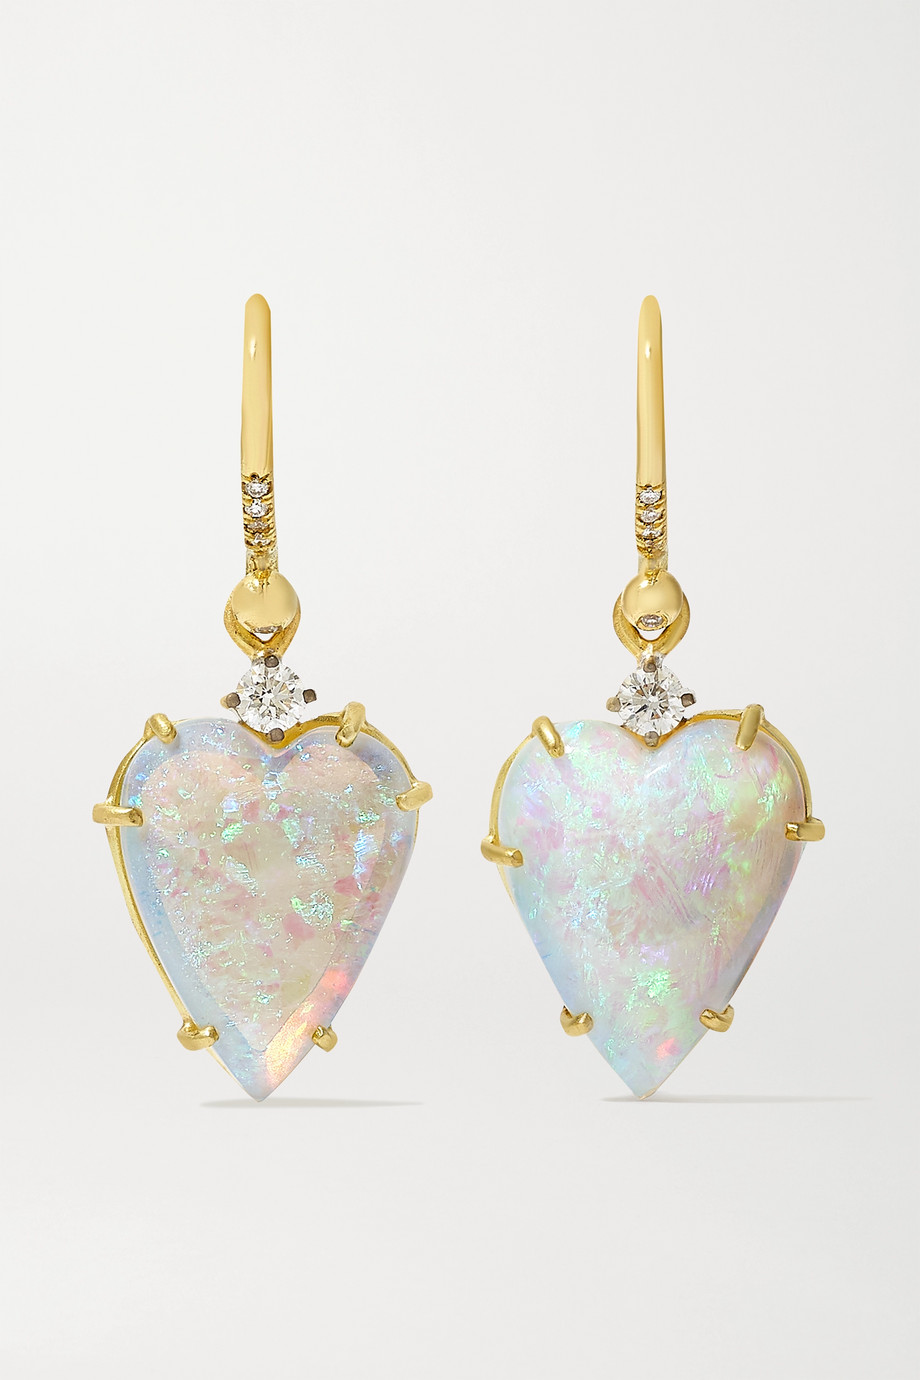 Irene Neuwirth Love 18-karat white and yellow gold, opal and diamond earrings